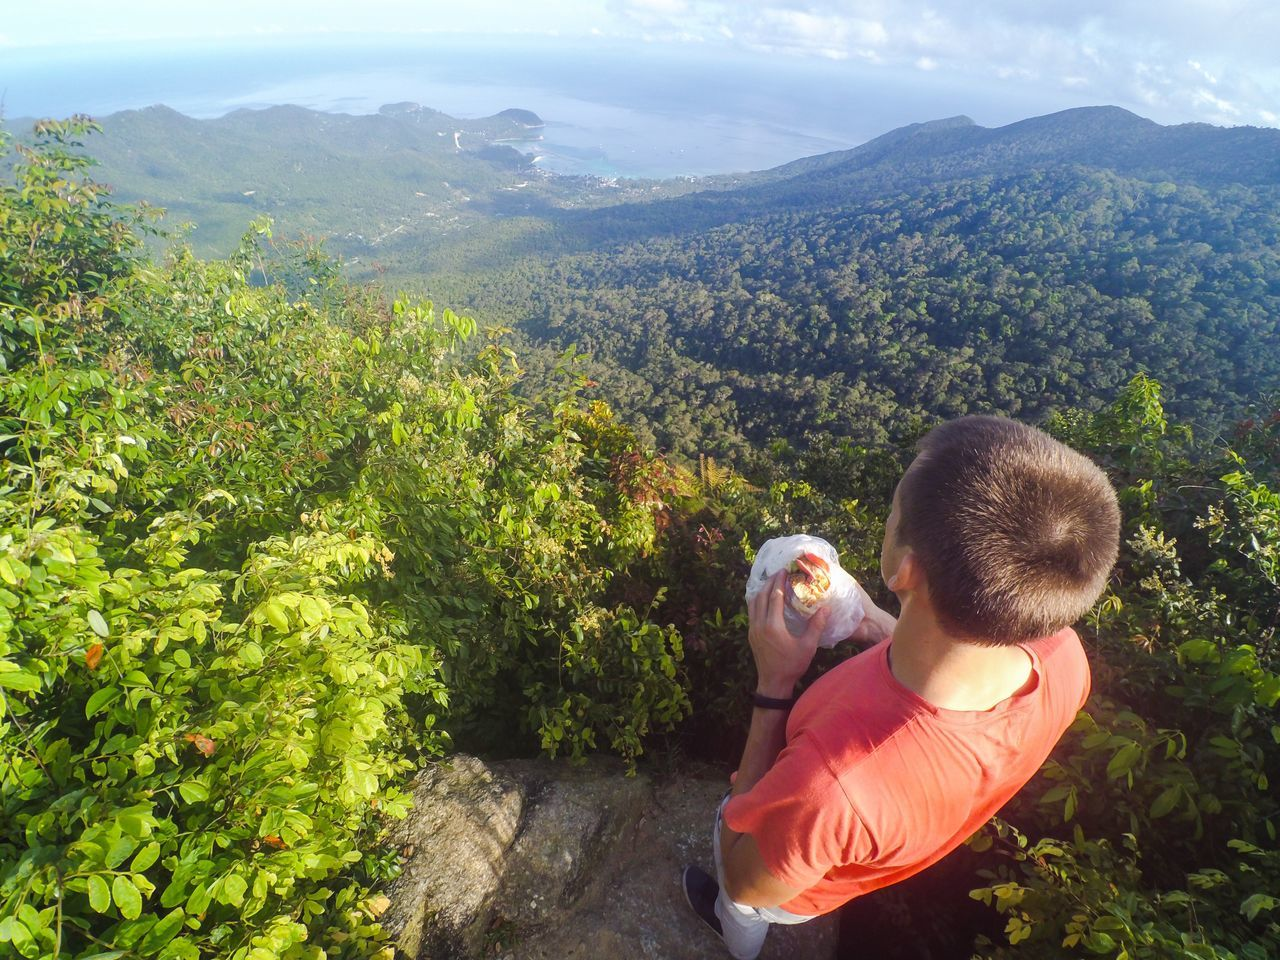 Admiration Adult Adults Only Beauty In Nature Eco Tourism Hiking Koh Phangan Landscape Lush Foliage Males  Morning Mountain Mountain Range Nature Outdoors People Rear View Sky Standing Thailand Tree Two People Vacations View From Above Young Adult